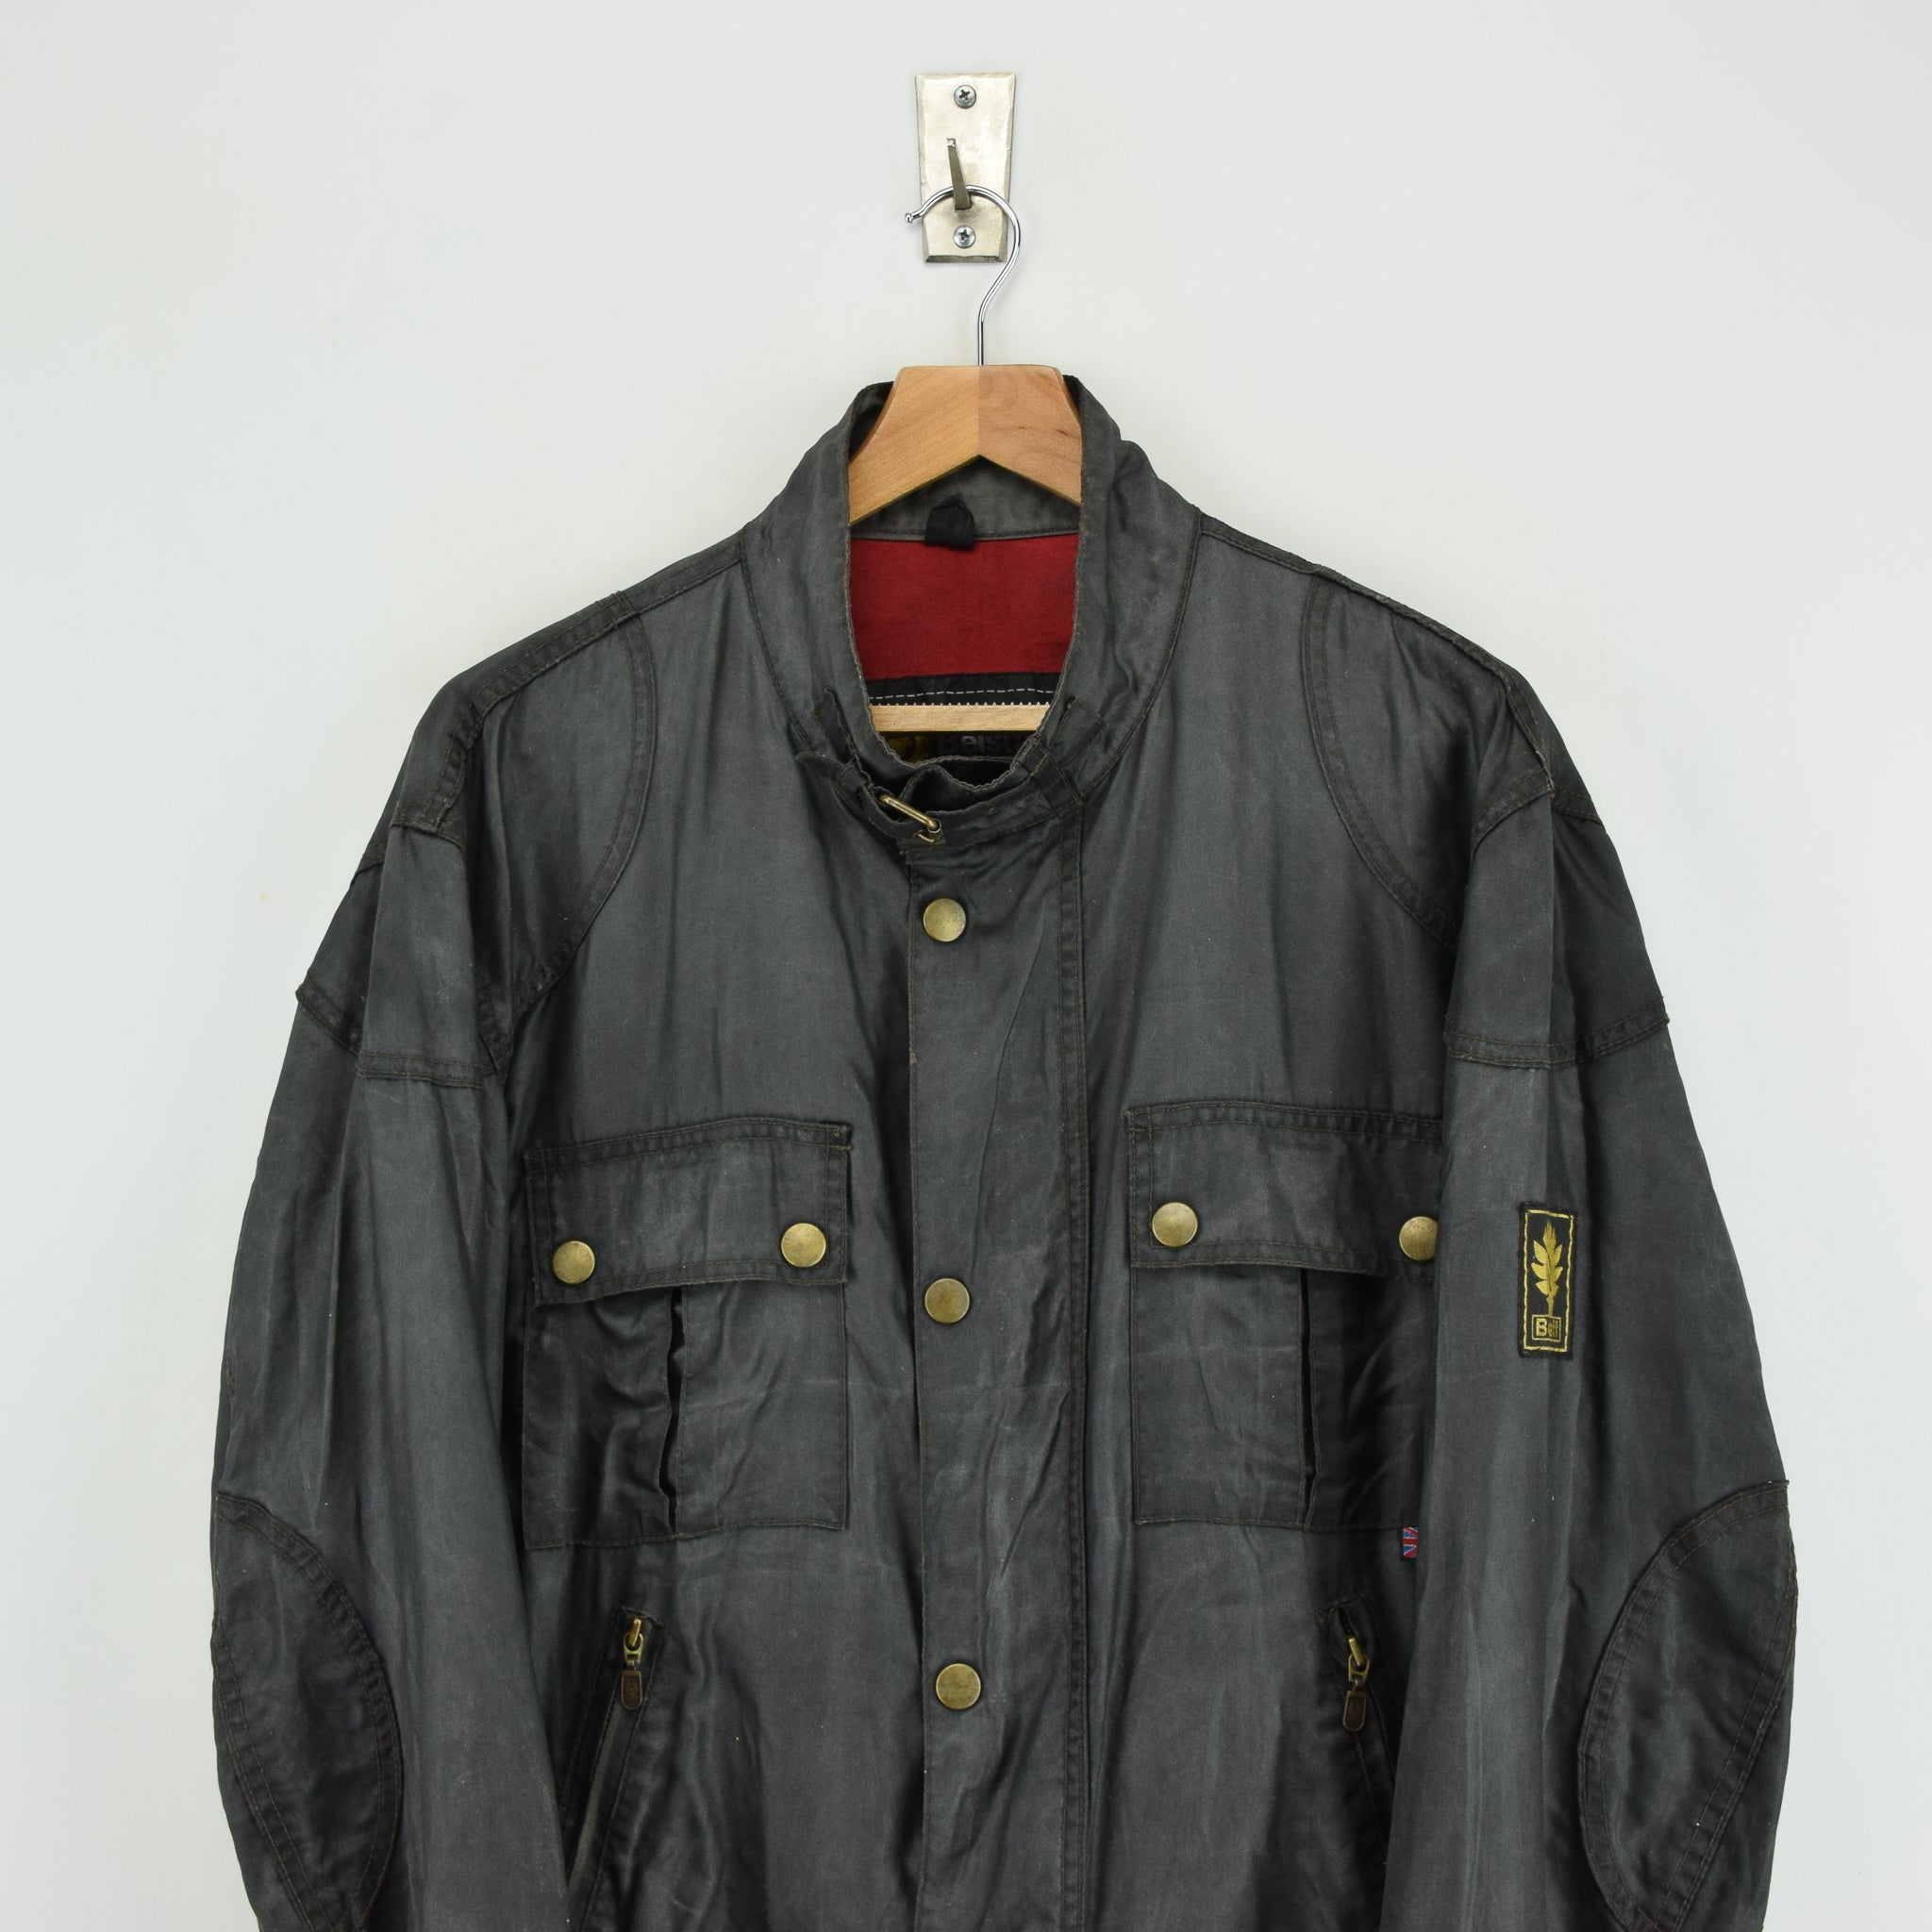 Belstaff Uranium Jubilee 80th Anniversary Short Nylon Biker Jacket L / XL chest